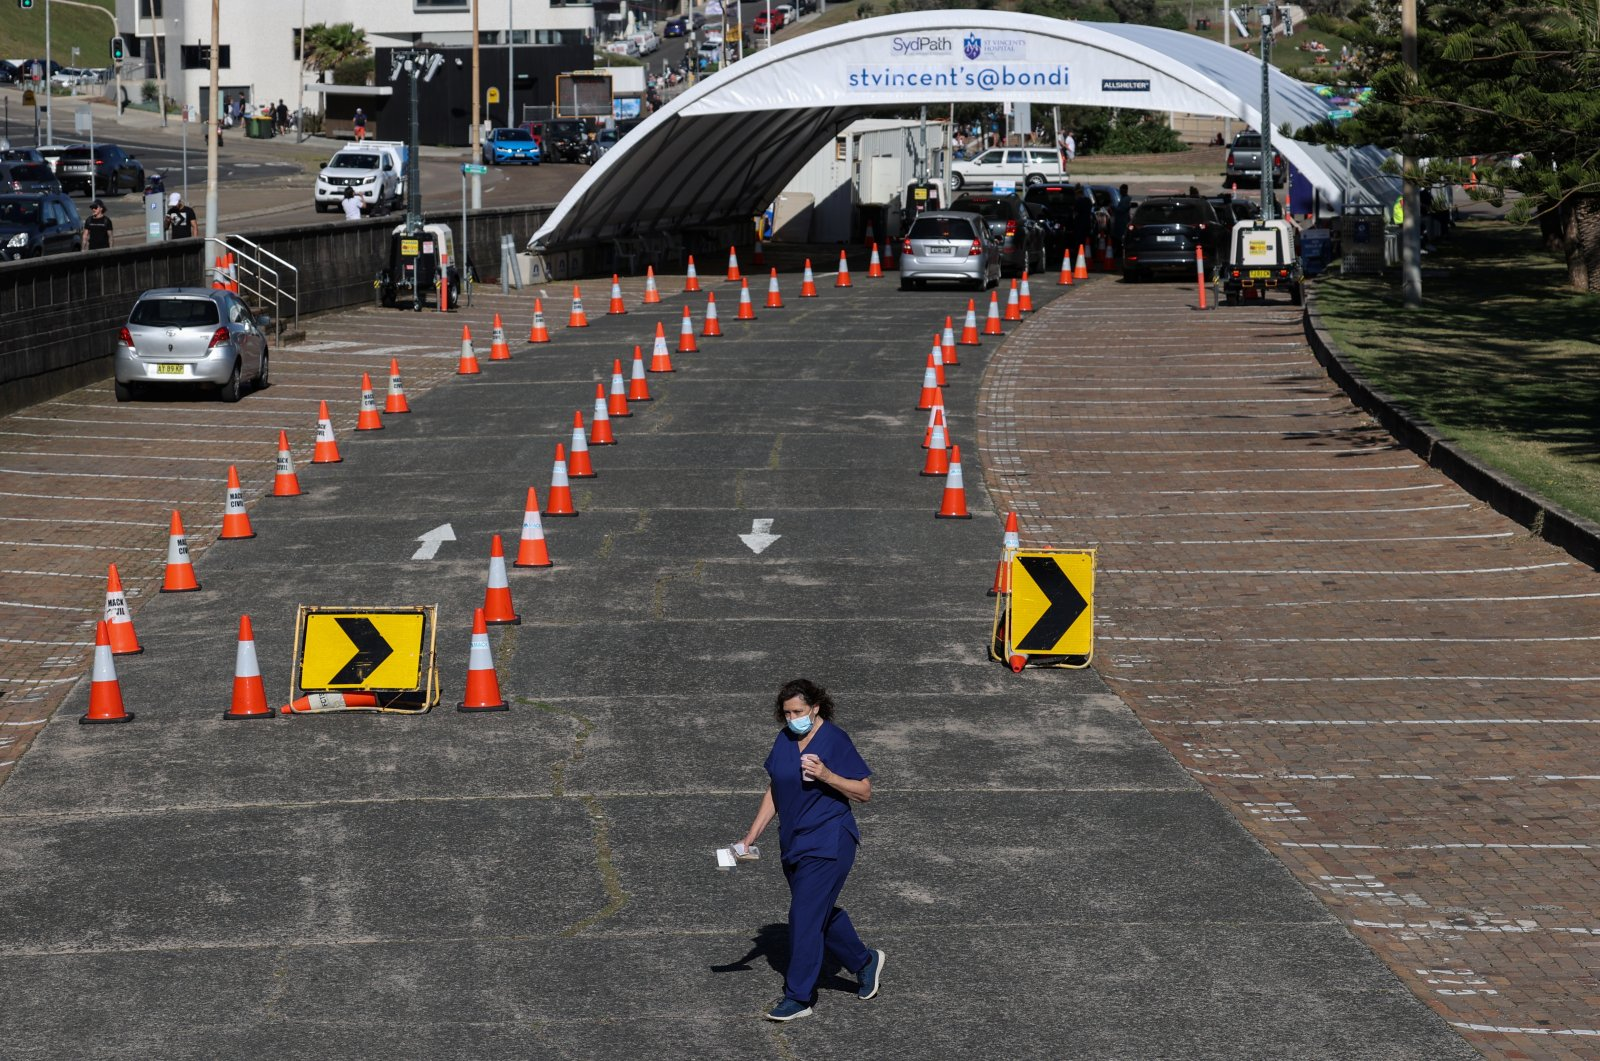 A health worker walks from the Bondi Beach drive-through COVID-19 testing center during an outbreak lockdown in Sydney, Australia, Oct. 5, 2021.  (Reuters Photo)